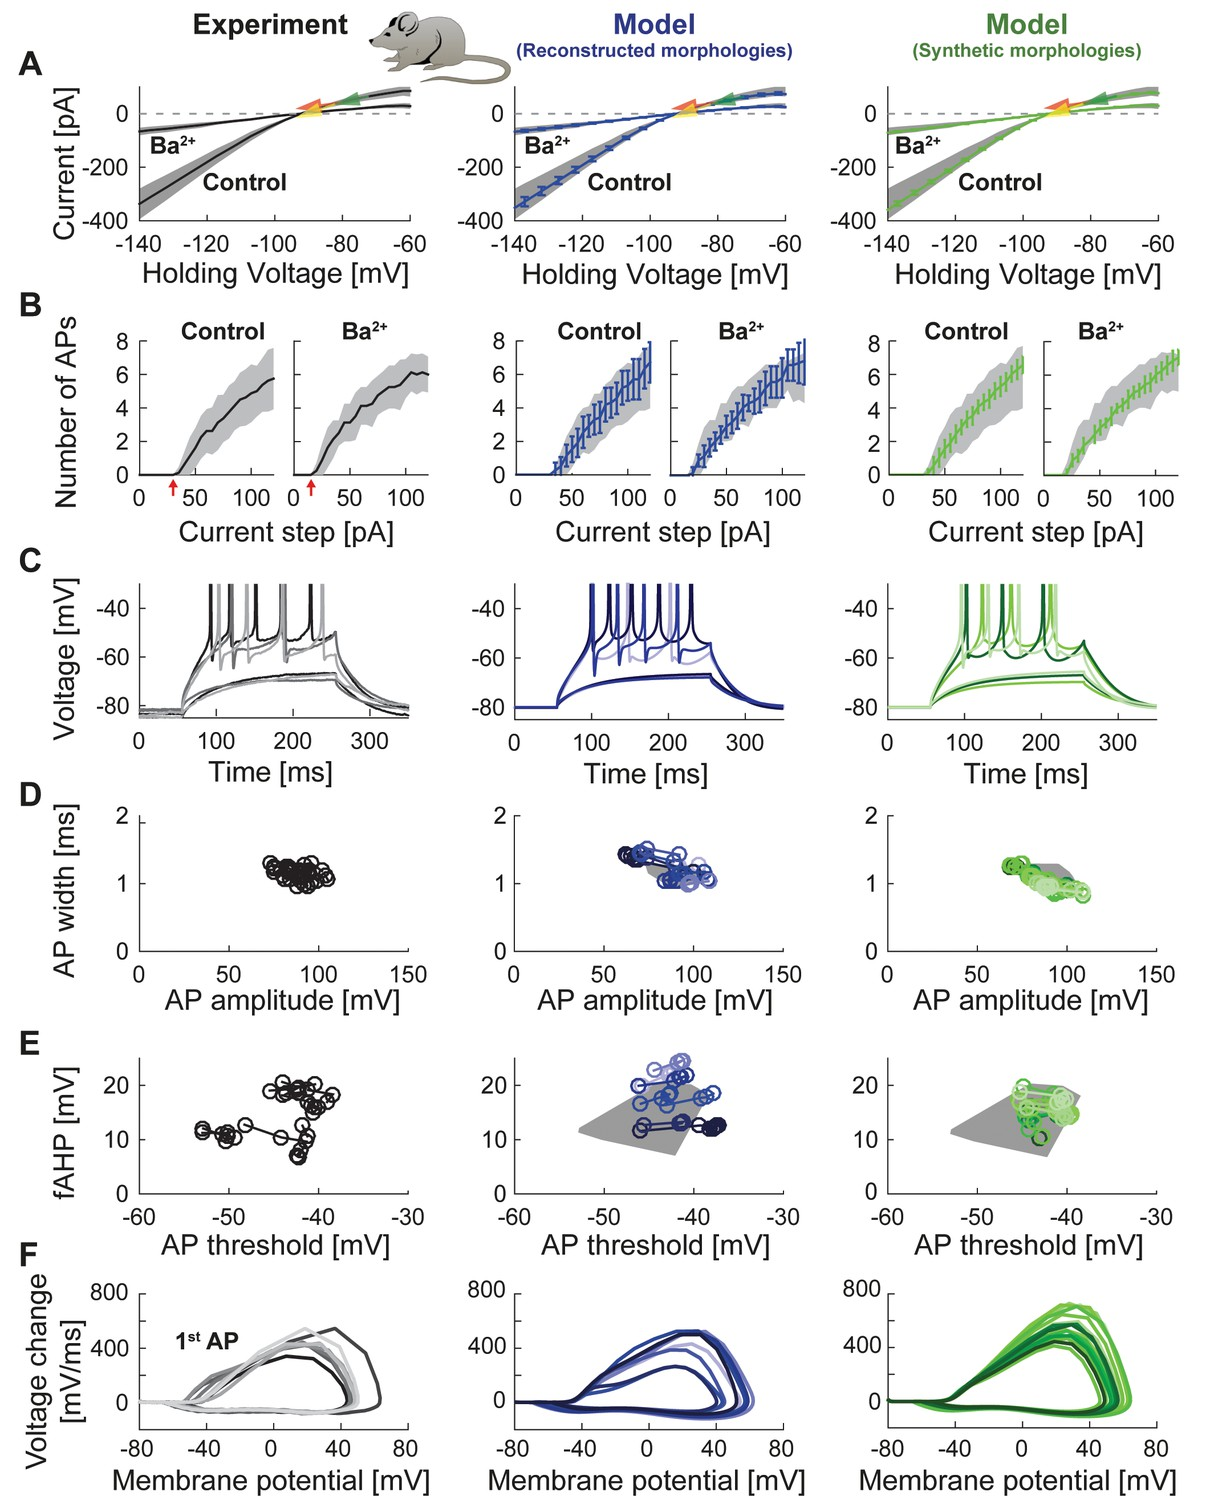 T2n As A New Tool For Robust Electrophysiological Modeling Tree 325 Proximity Switch Wiring Diagram Passive And Active Properties Of The Mature Mouse Gc Model